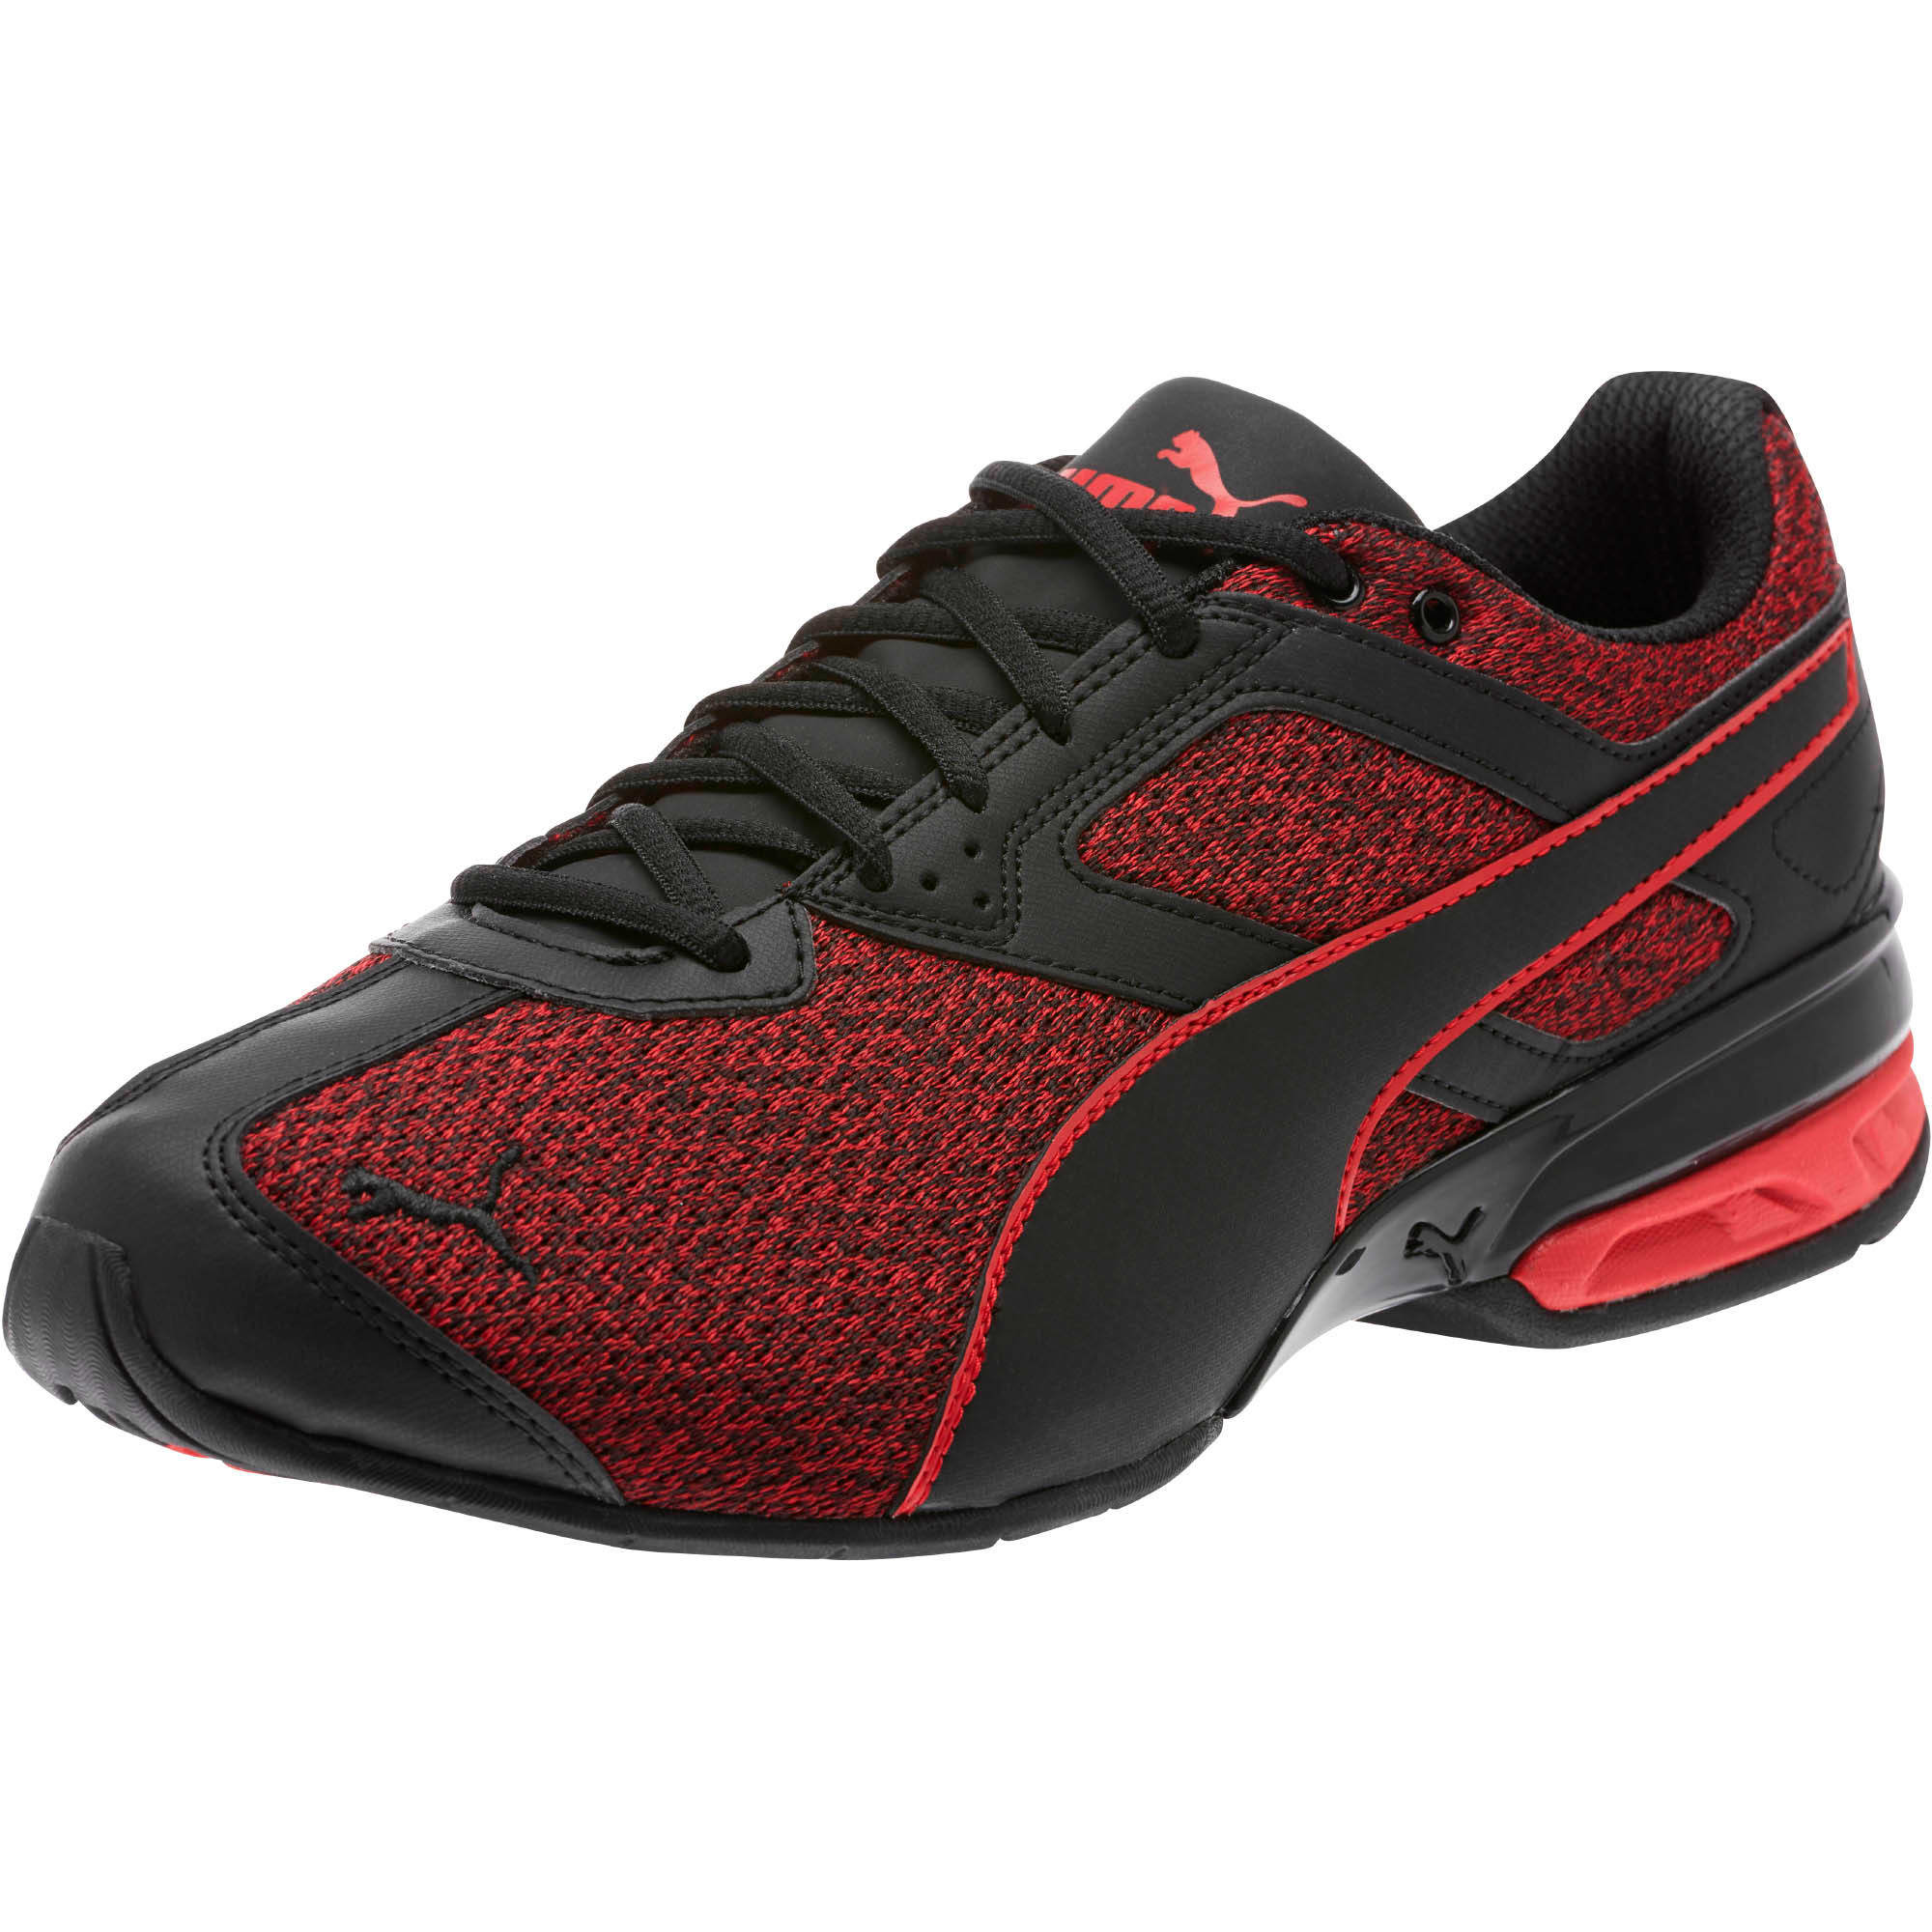 Thumbnail 1 of Tazon 6 Knit Men's Sneakers, Puma Black-Toreador, medium